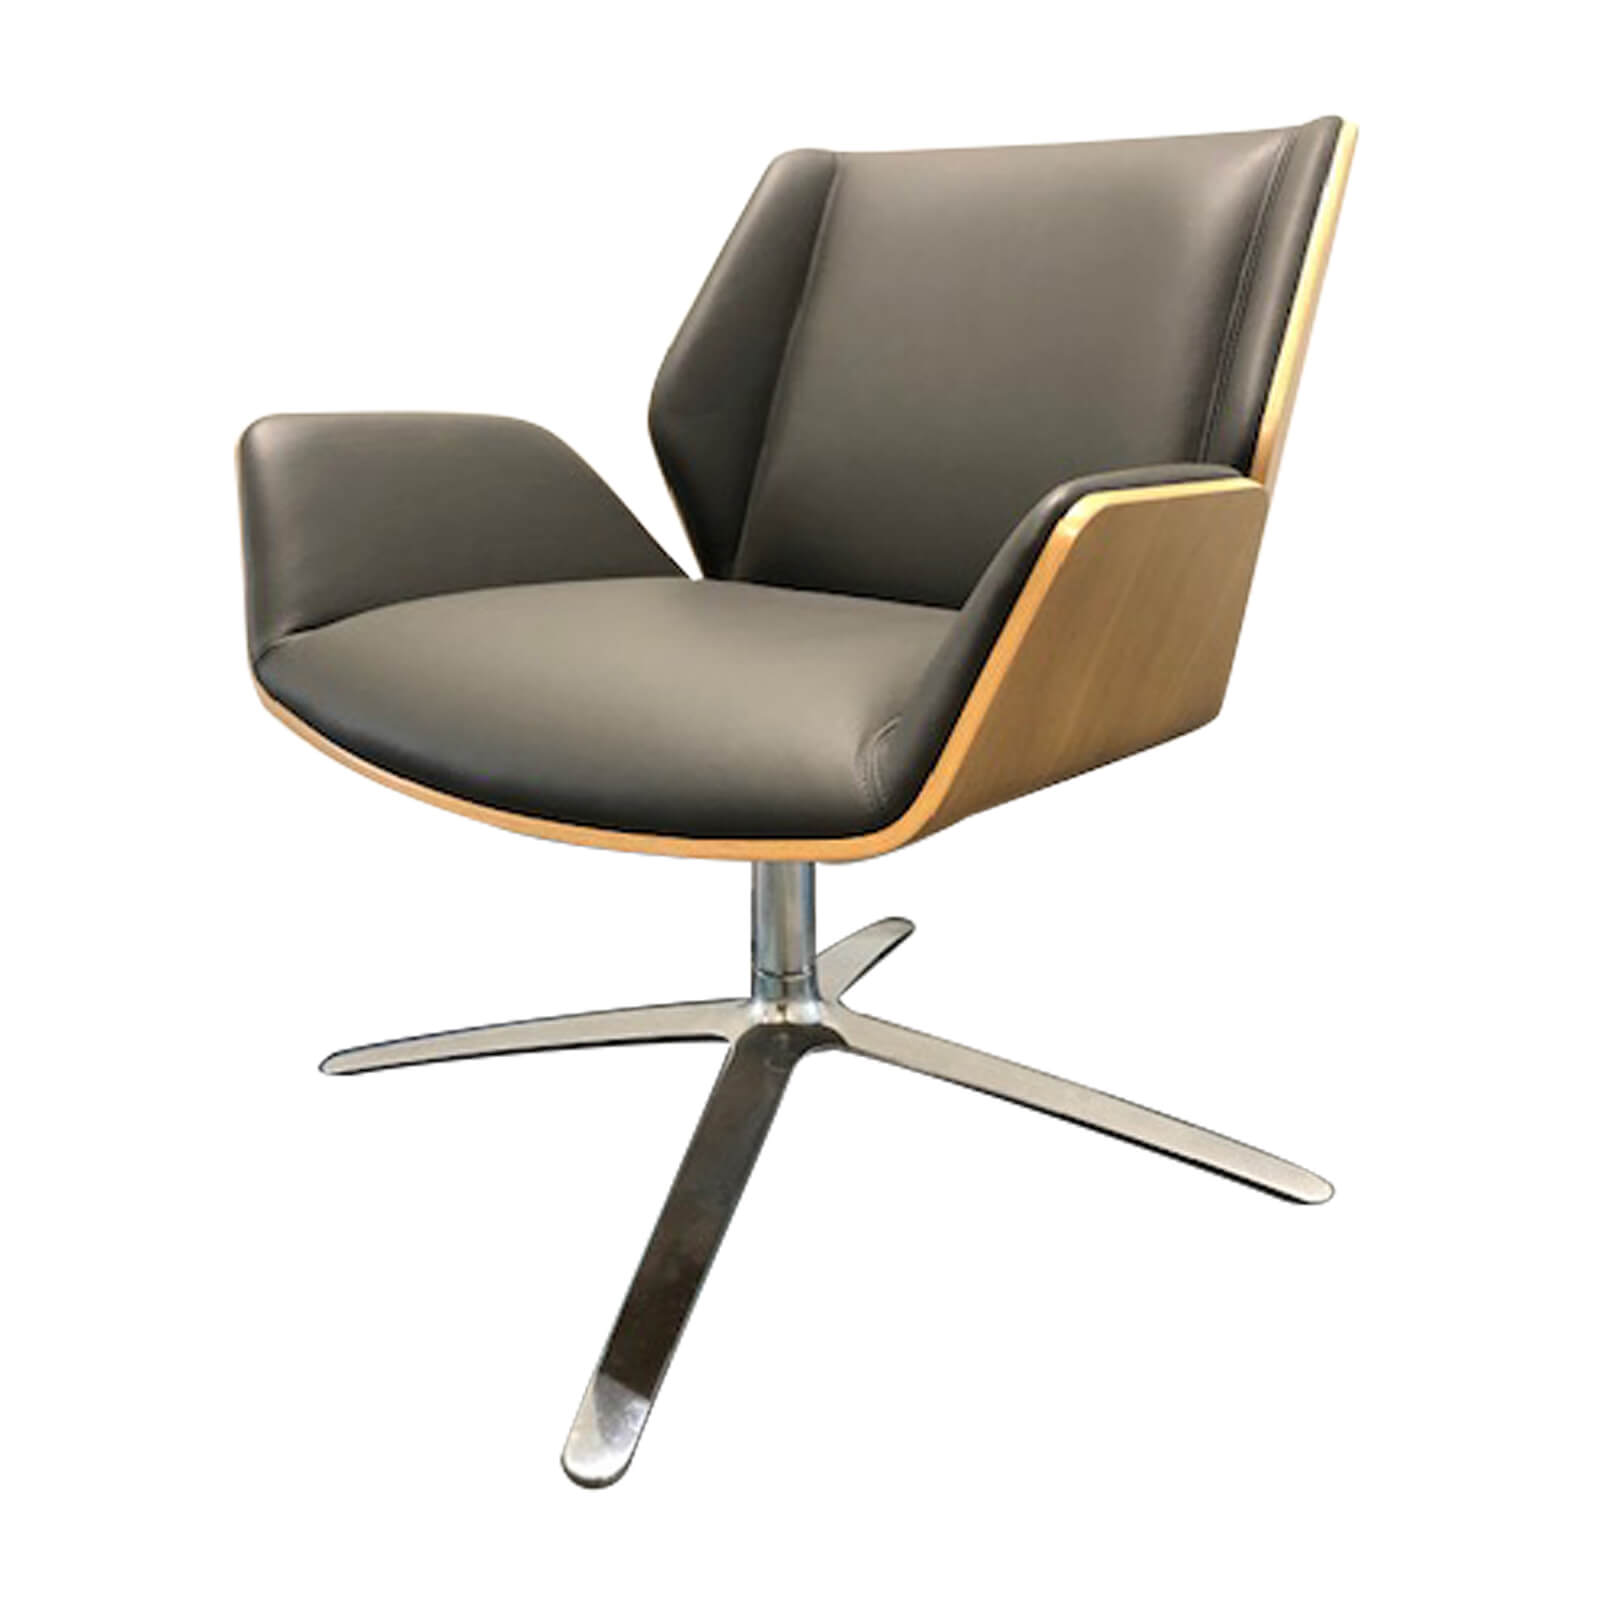 Boss Design Kruze Office chair